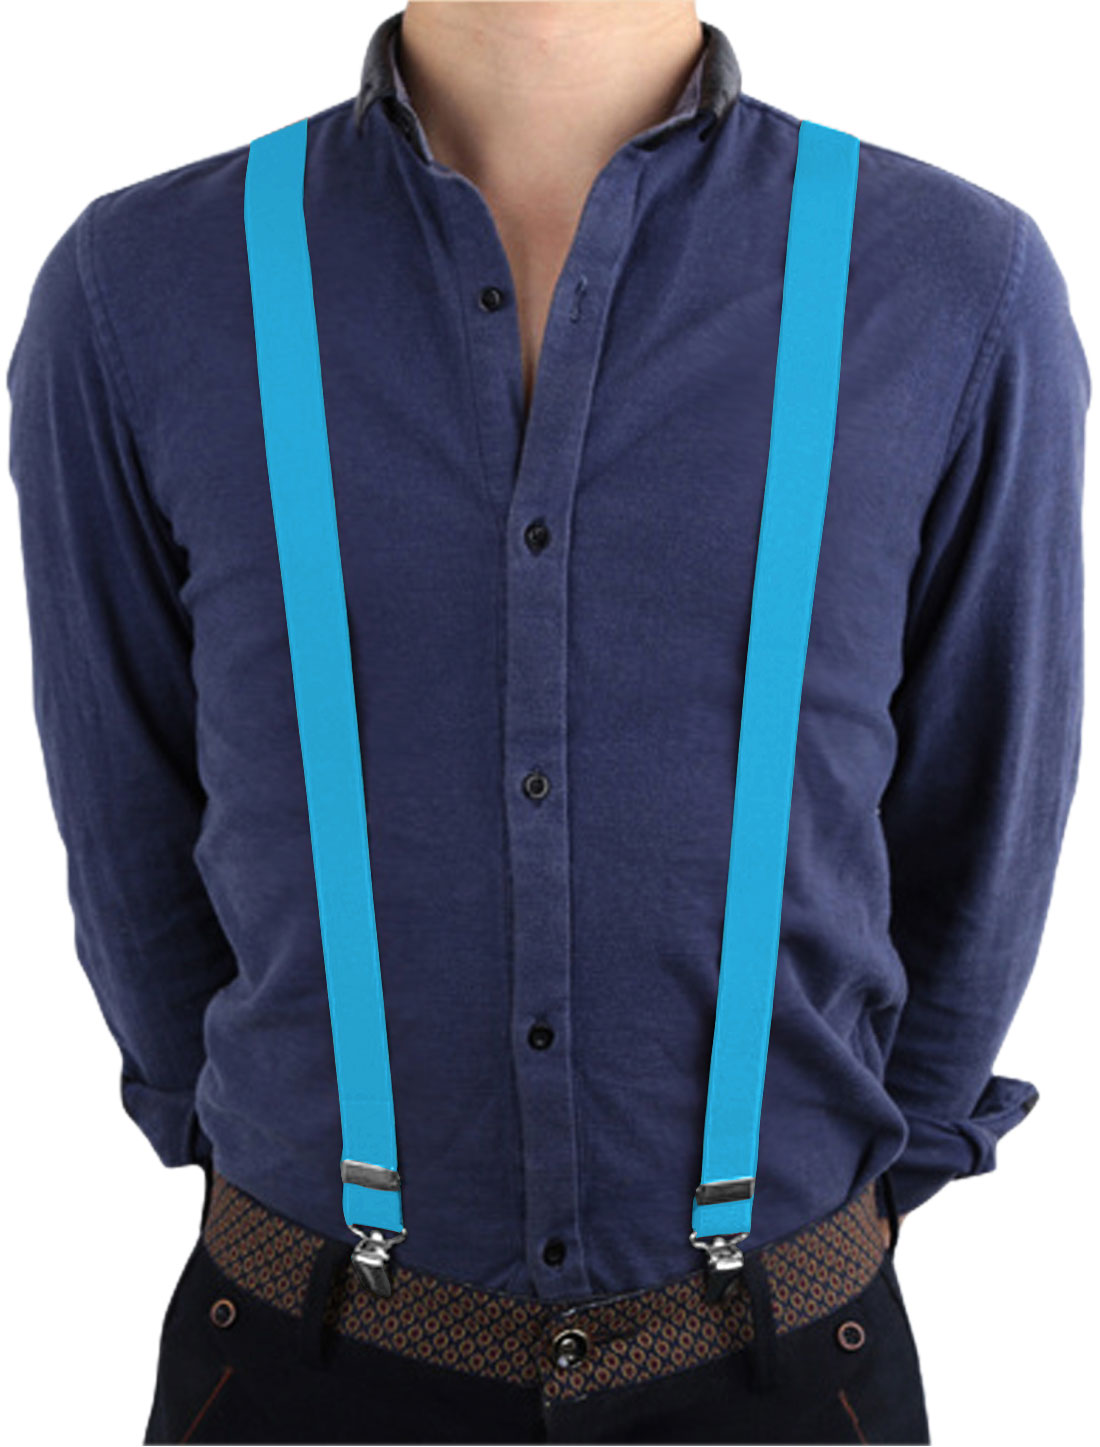 Unisex Metal Adjustor Clamps Y Shaped Elastic Casual Suspenders Blue